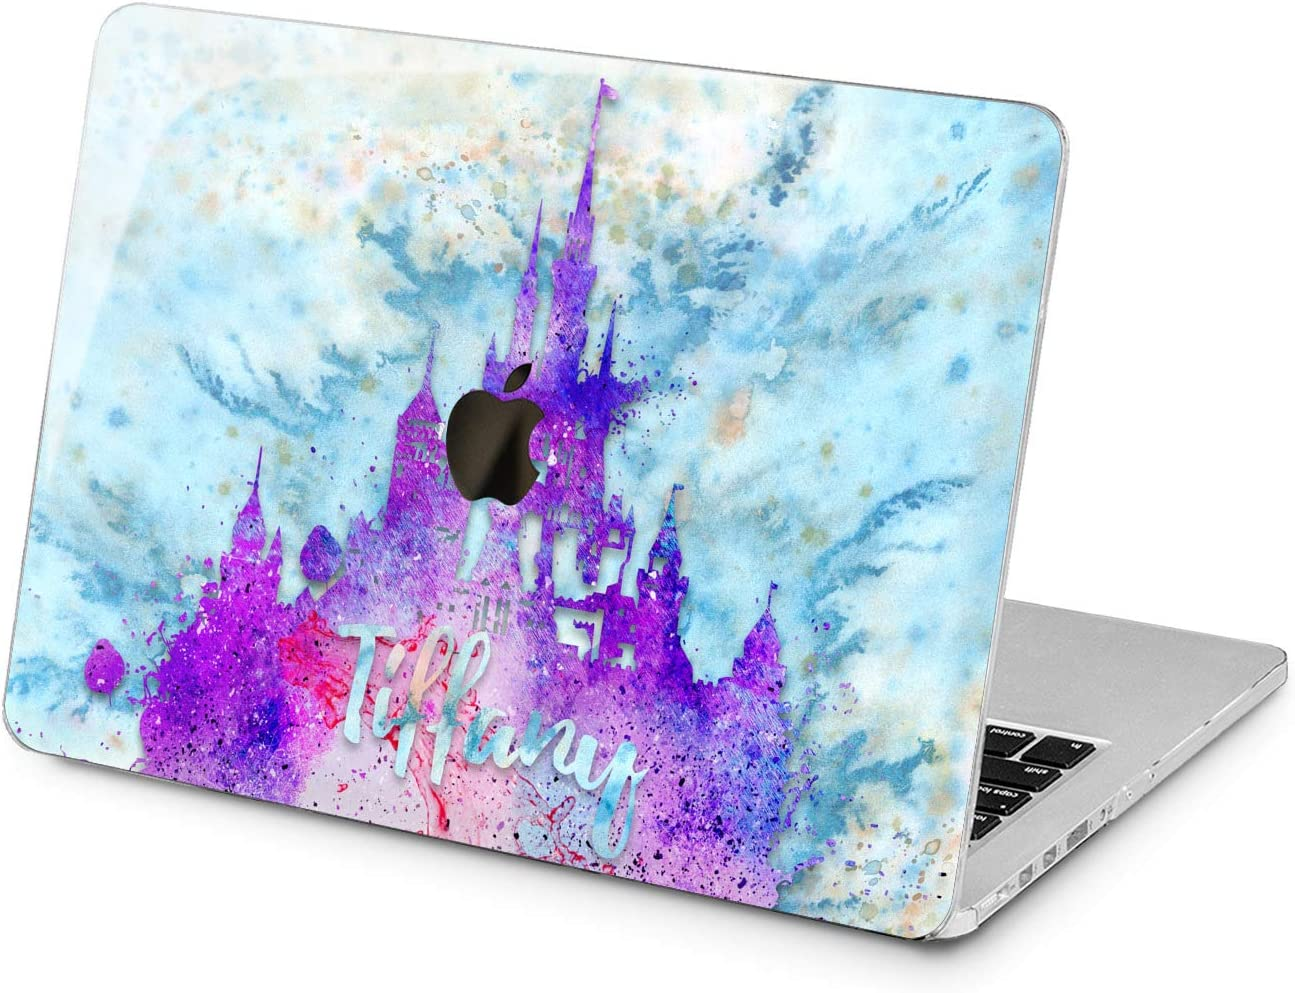 "Cavka Hard Shell Case for Apple MacBook Pro 13"" 2019 15"" 2018 Air 13"" 2020 Retina 2015 Mac 11"" Mac 12"" Monogram Abstract Design Print New Cover Protective Unique Laptop Purple Plastic Initial Castle"